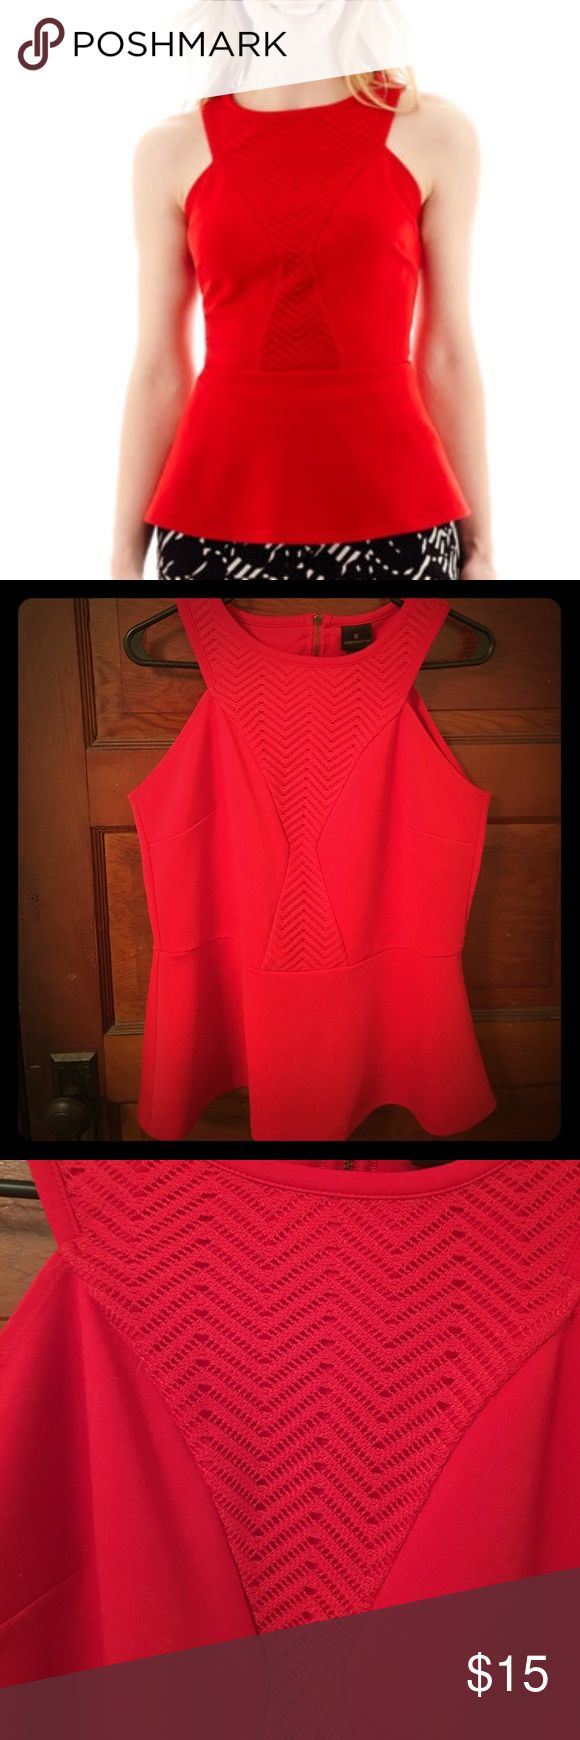 Red peplum top Exposed back zipper, lace like detailing. Polyester, spandex and cotton. Worthington Tops Tank Tops